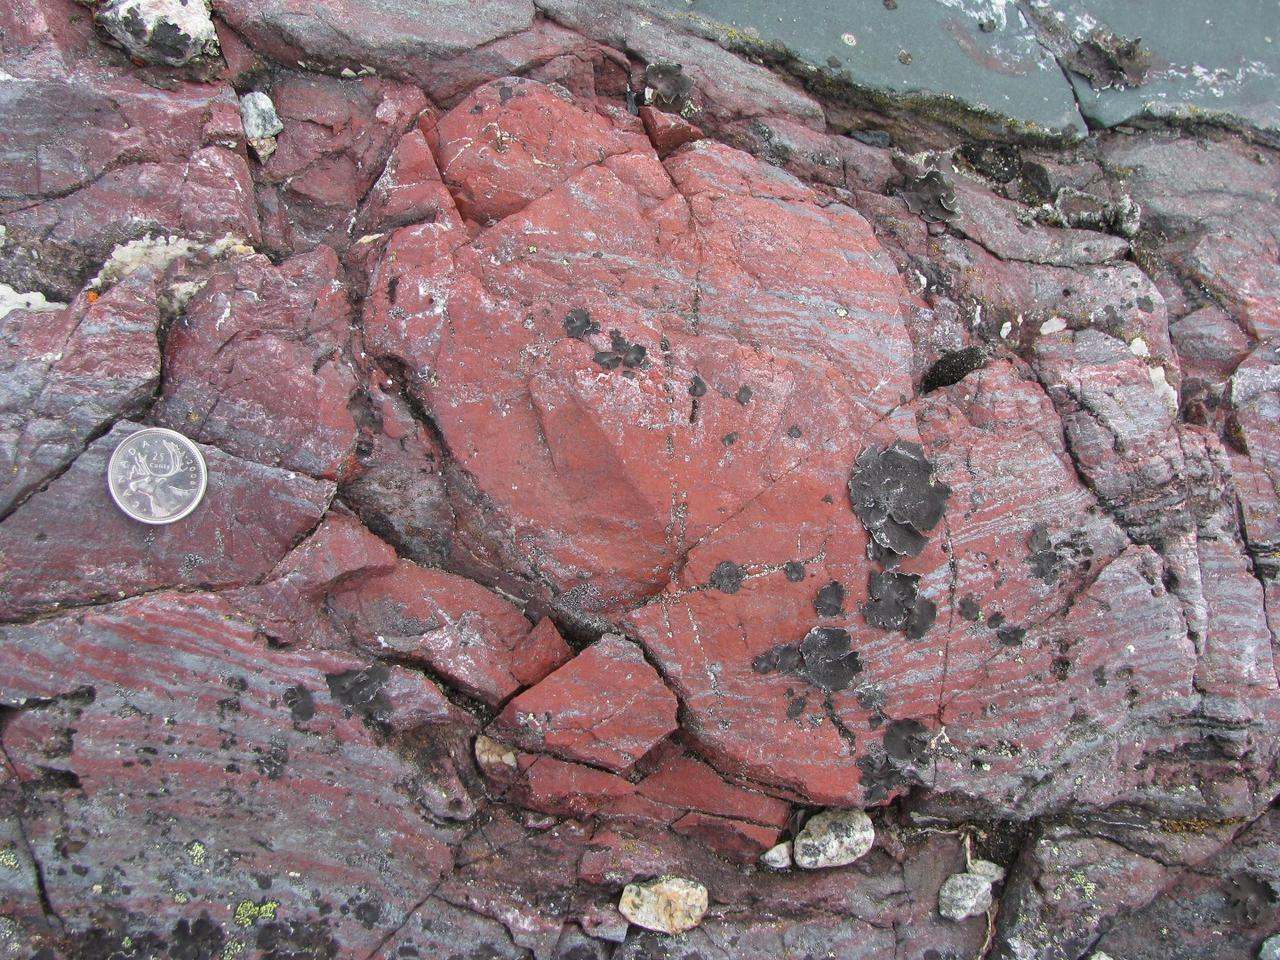 The haematitic chert (an iron- and silica-rich rock) seen here contains tubular and filament-like microfossils